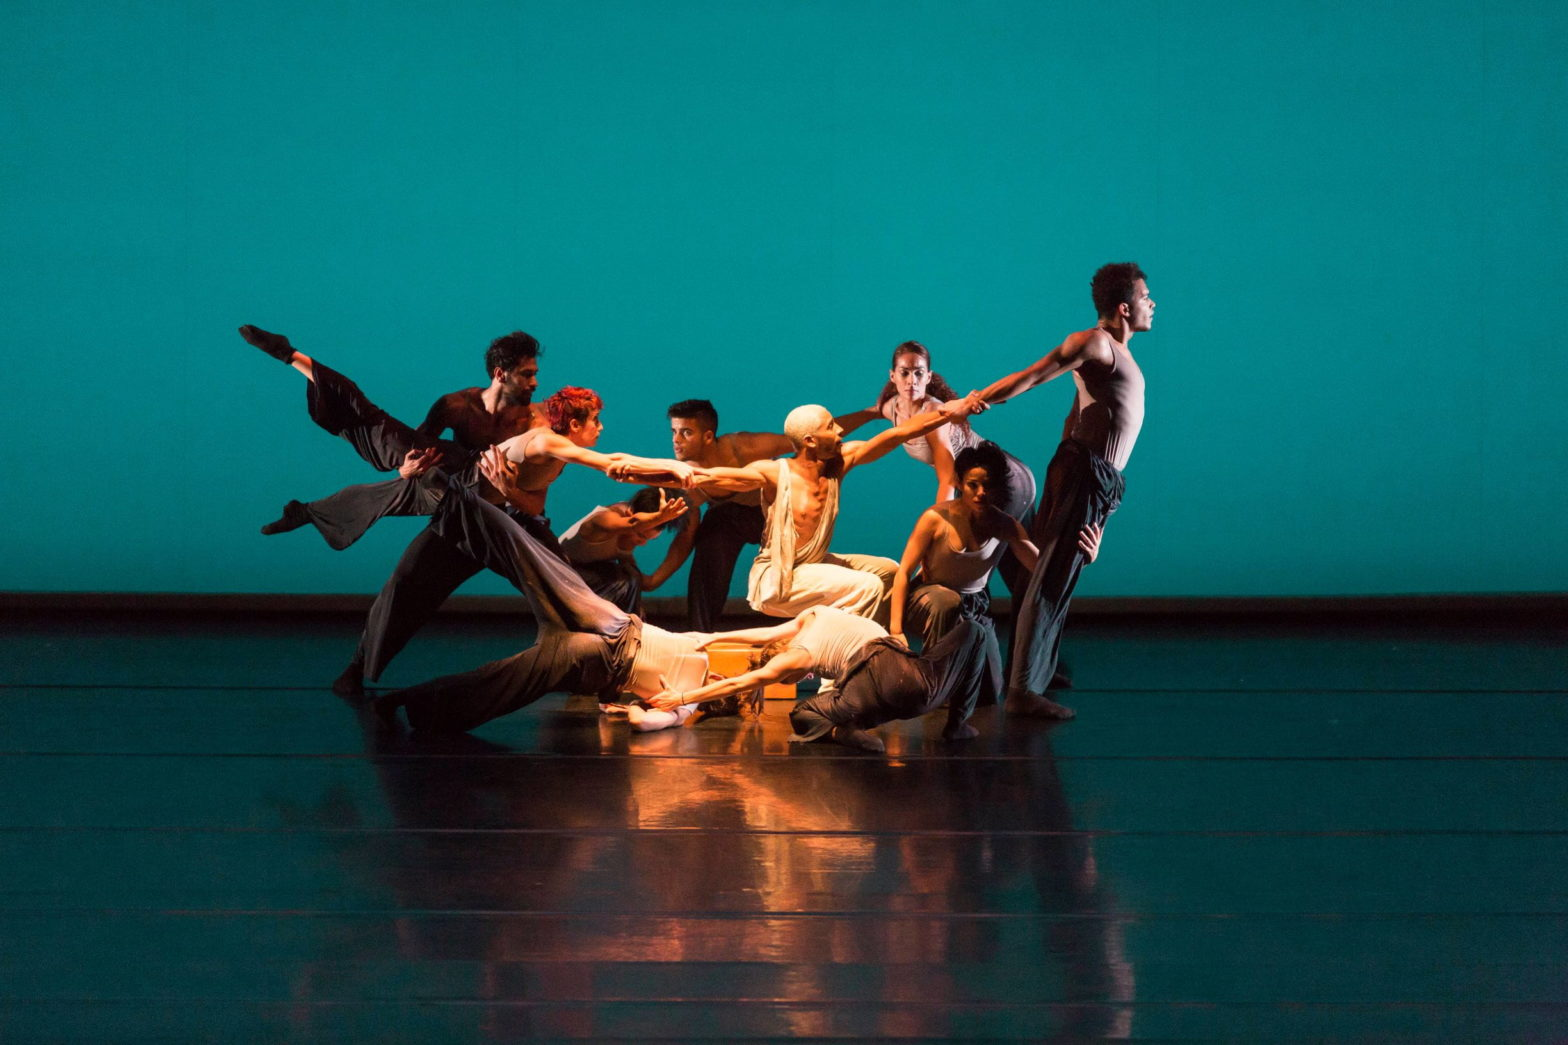 A group of dance artists on stage. The image highlights the work of artists in a blog post about how to support the arts.